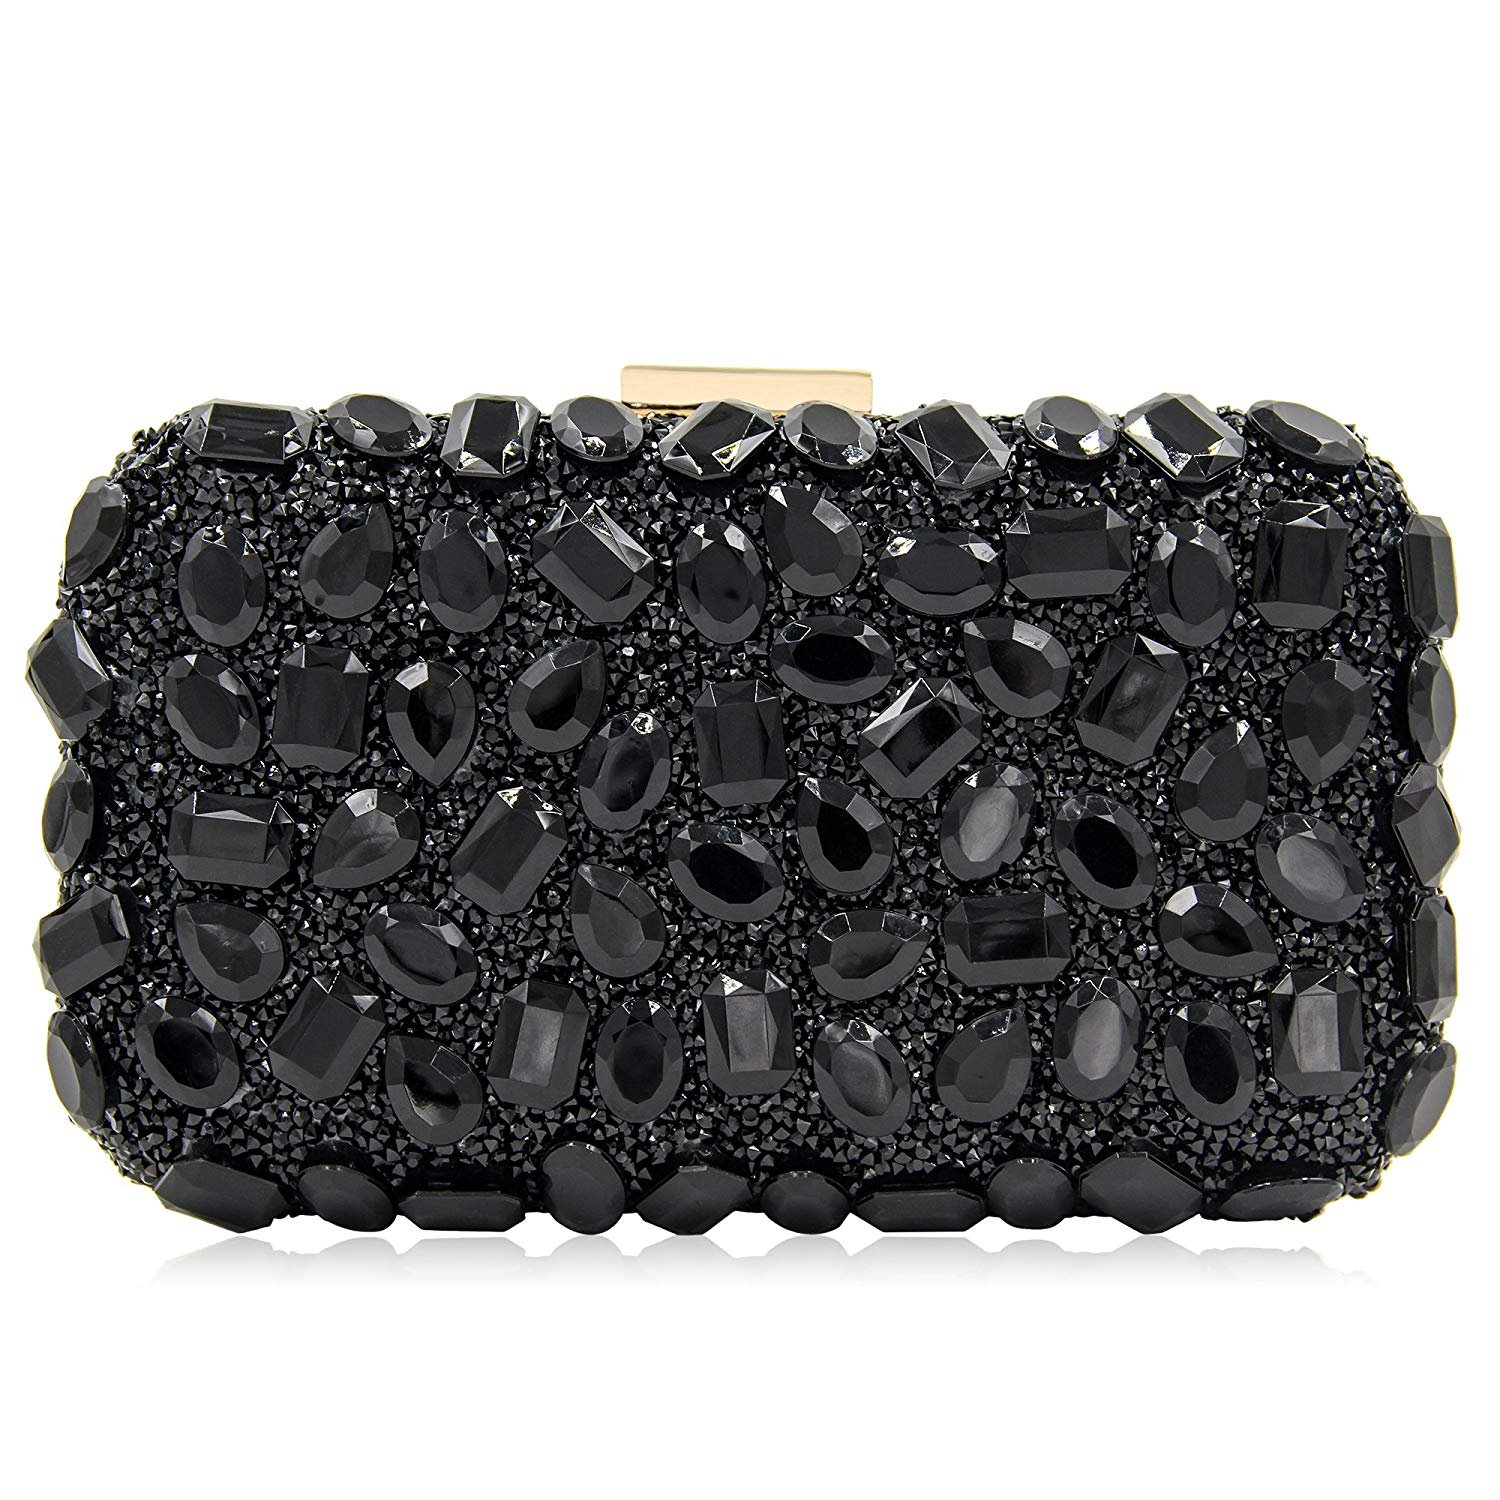 Stunning Rhinestone Party Clutches Cocktail Crossbody Evening Bags For Women Clutch Purse Handbag (Black)